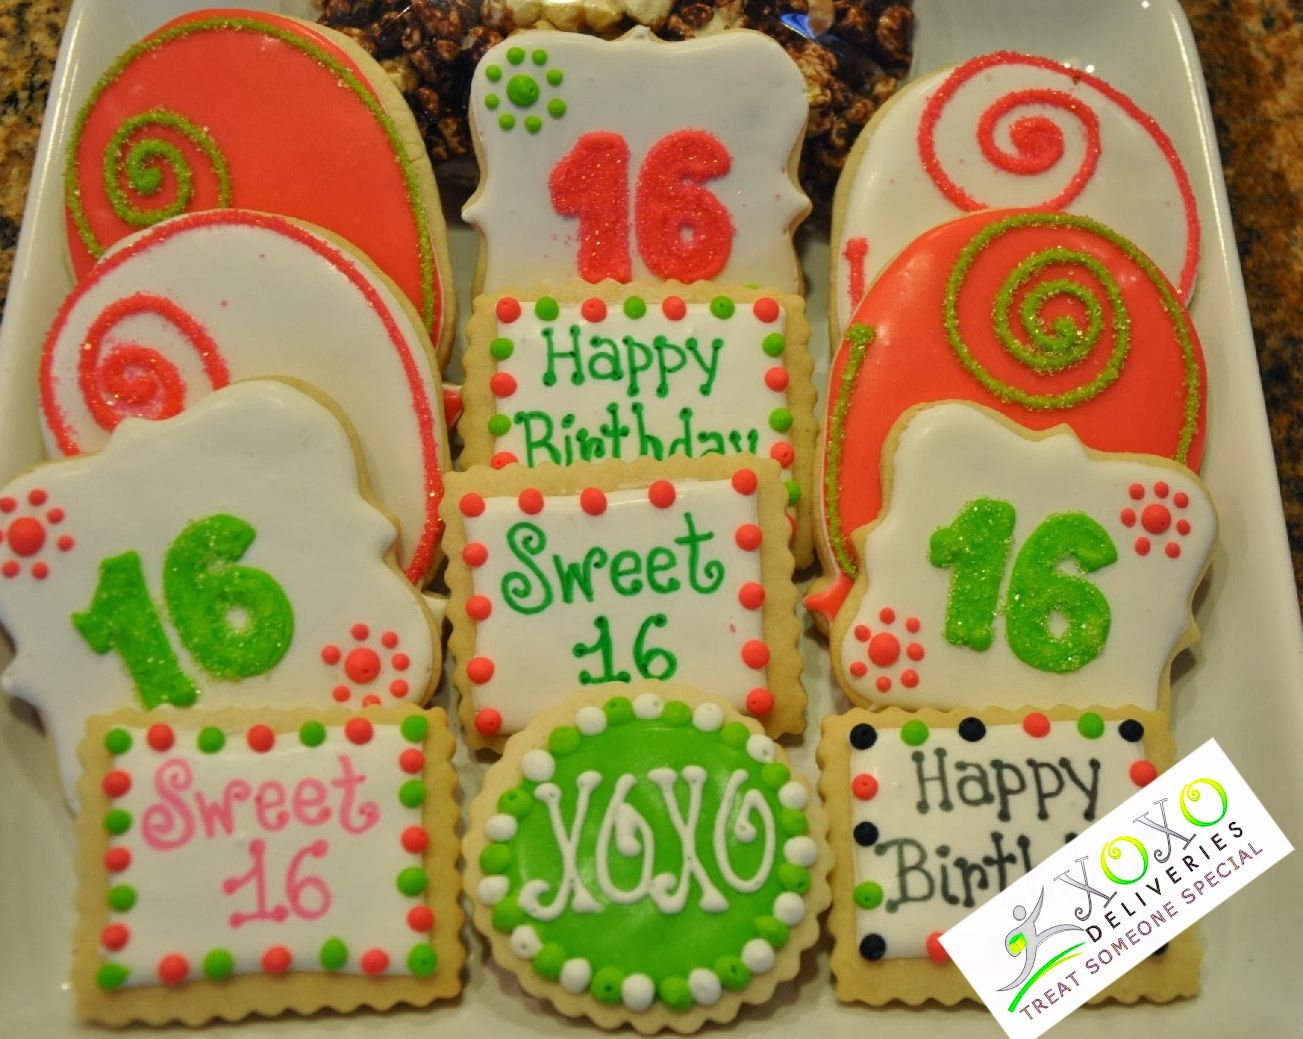 Happy Birthday gift box XOXO Deliveries 12 decorated cookies